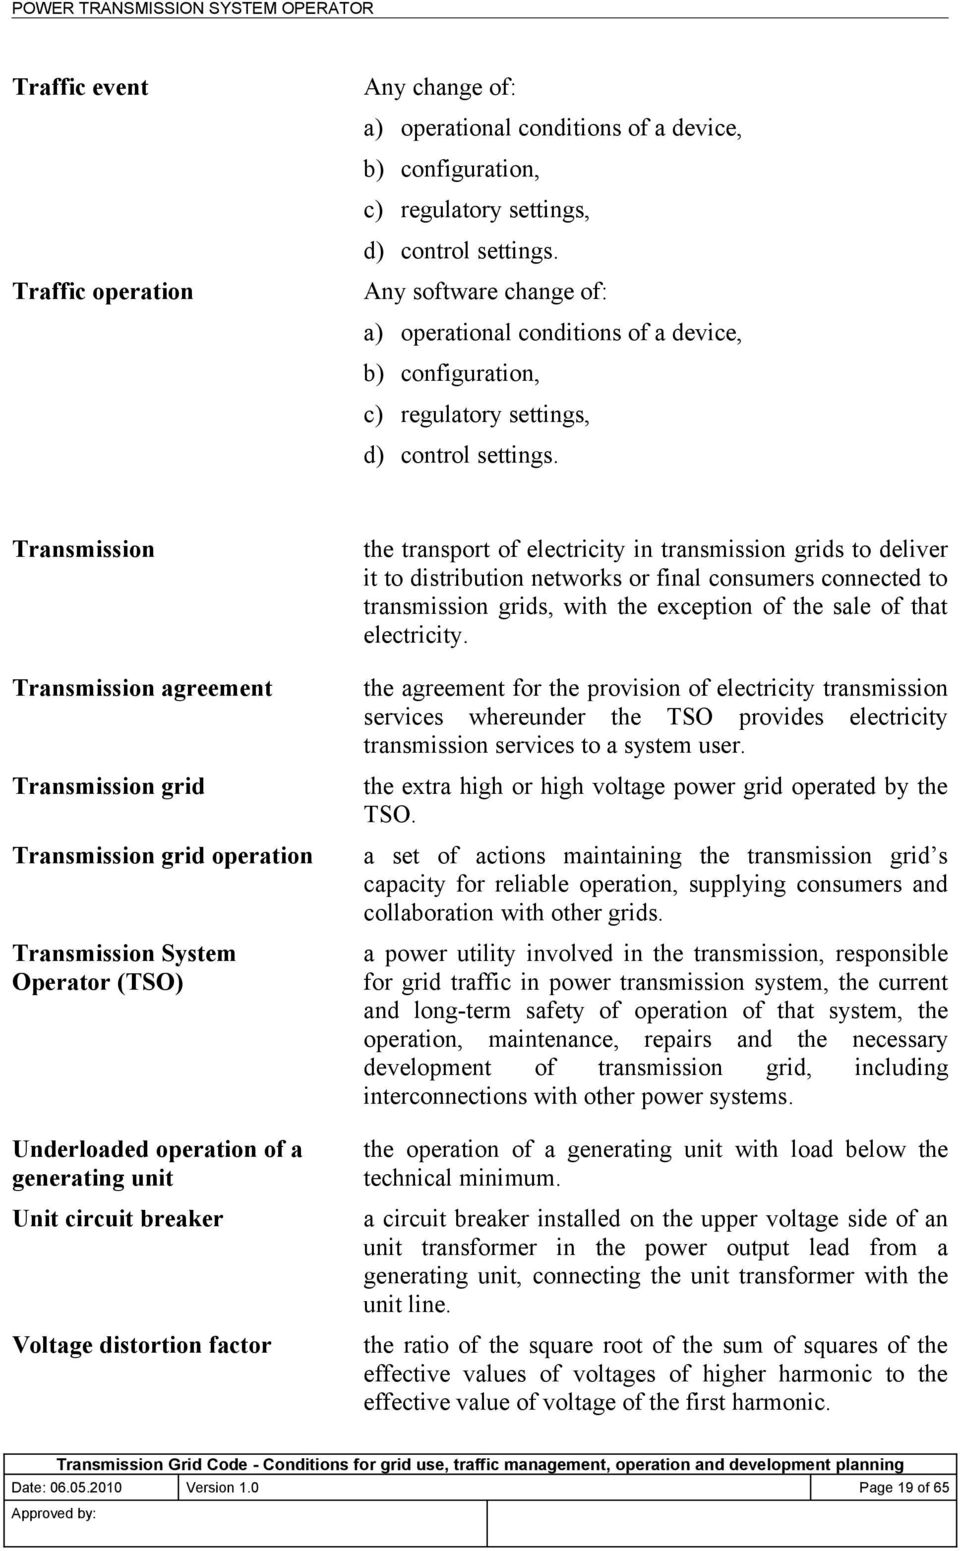 Transmission Transmission agreement Transmission grid Transmission grid operation Transmission System Operator (TSO) Underloaded operation of a generating unit Unit circuit breaker Voltage distortion